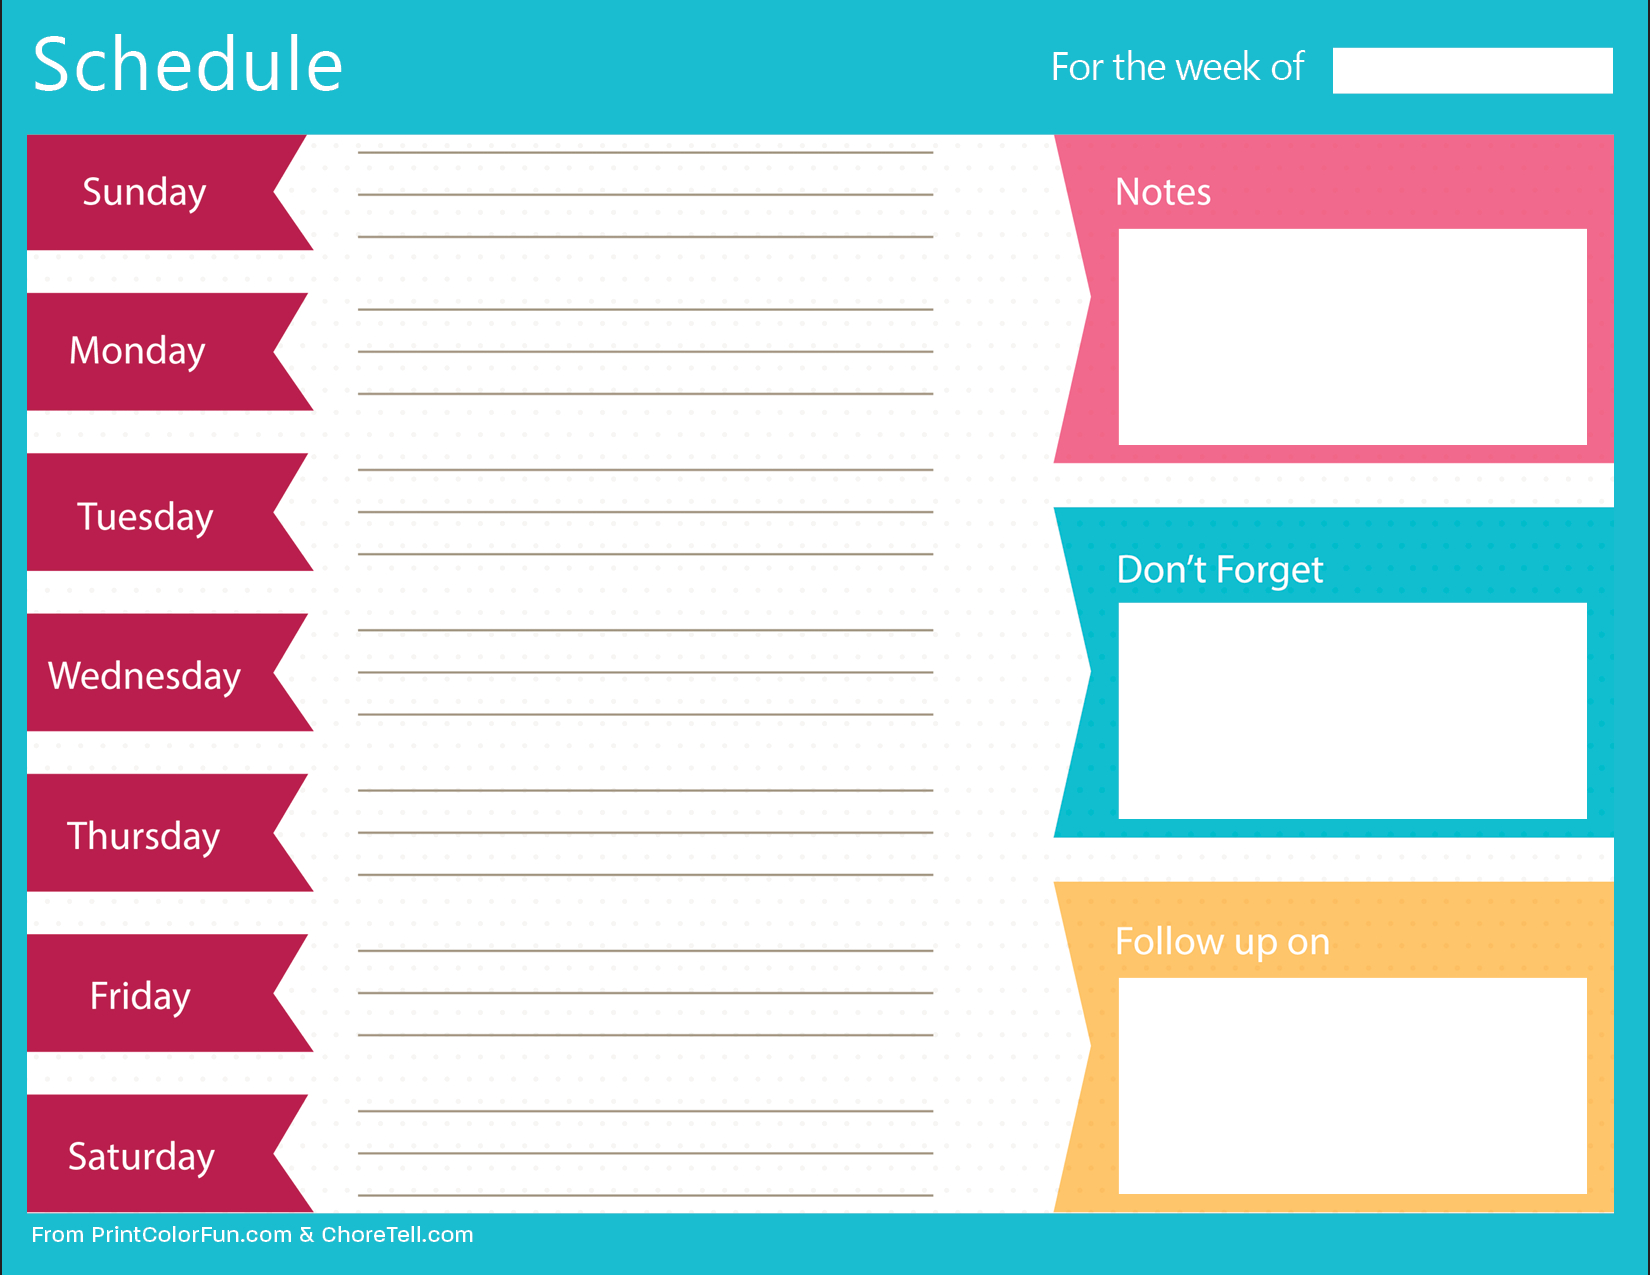 Weekly Schedule Printable Clean Bold Planner Free Template With | Smorad - Free Printable Schedule